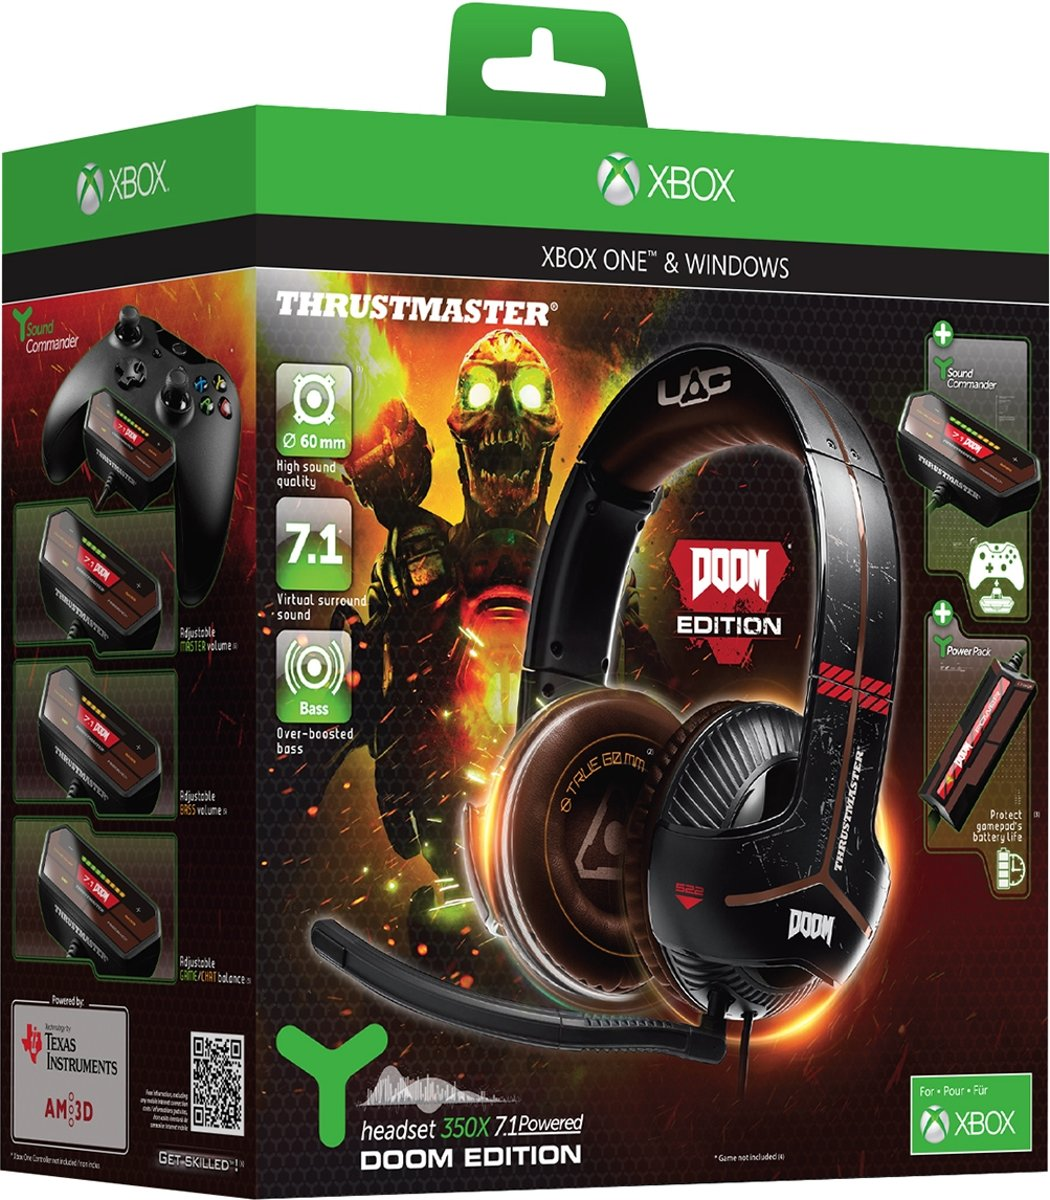 Thrustmaster Y350X 71 Powered Gaming Headset Doom Limited Edition kopen